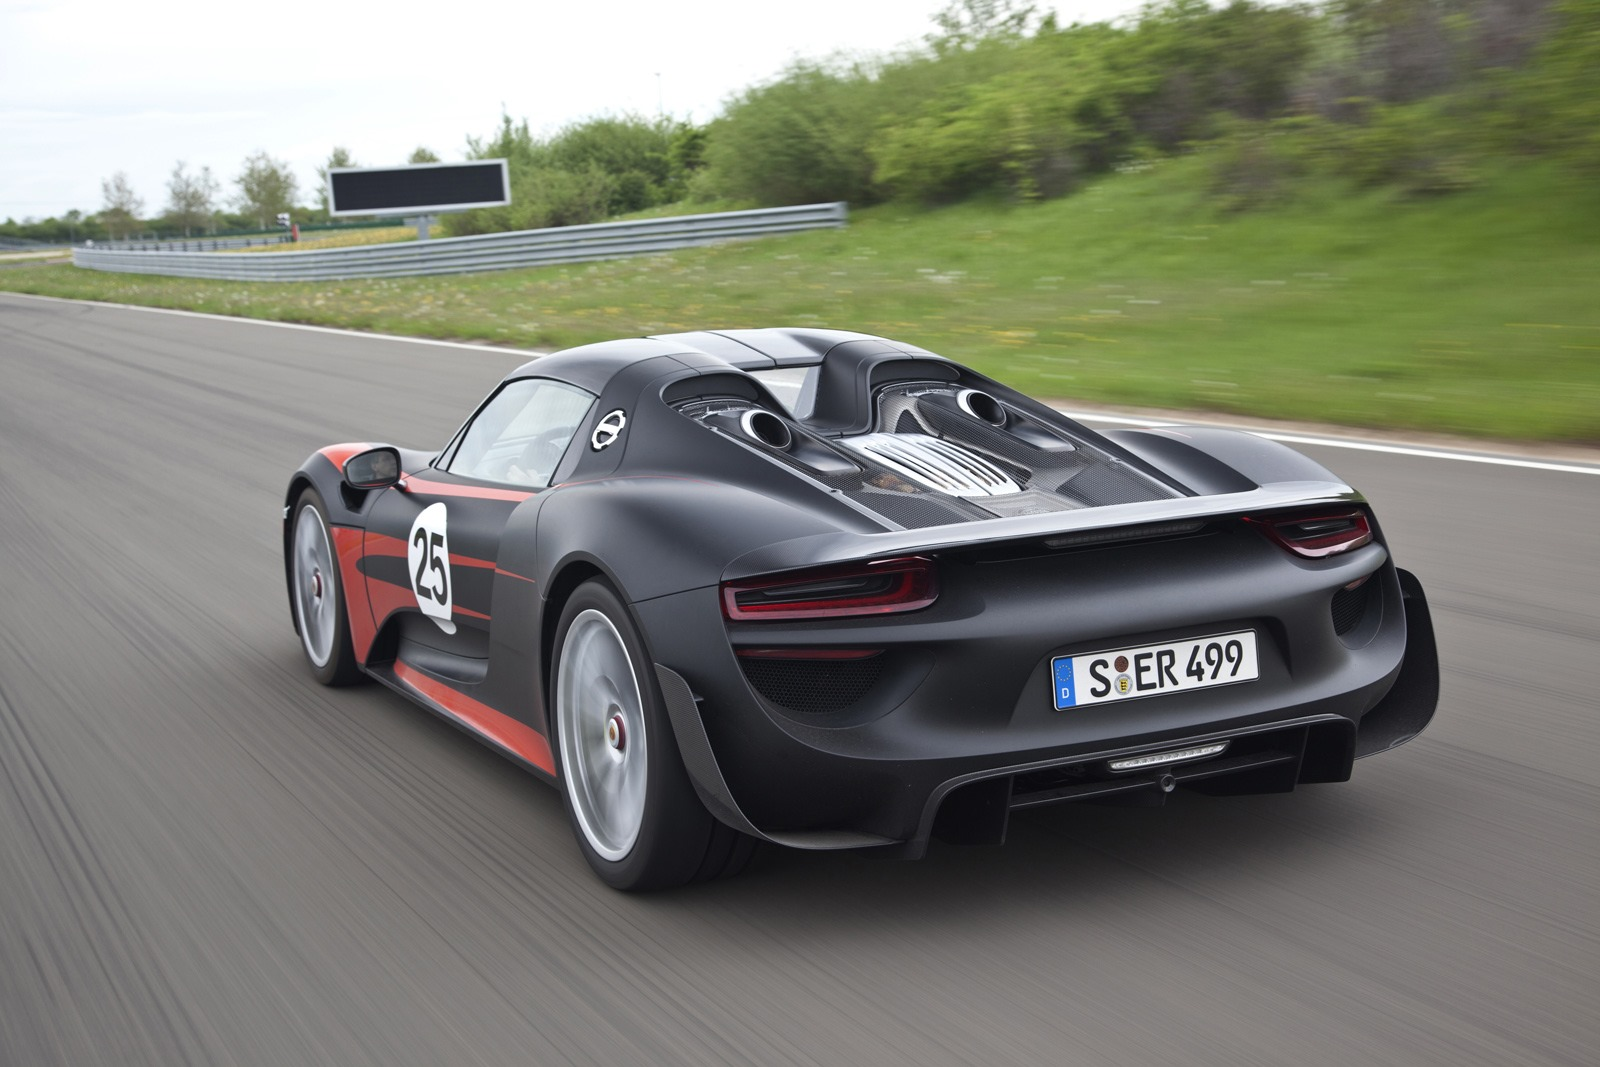 porsche releases new 918 spyder technical details. Black Bedroom Furniture Sets. Home Design Ideas